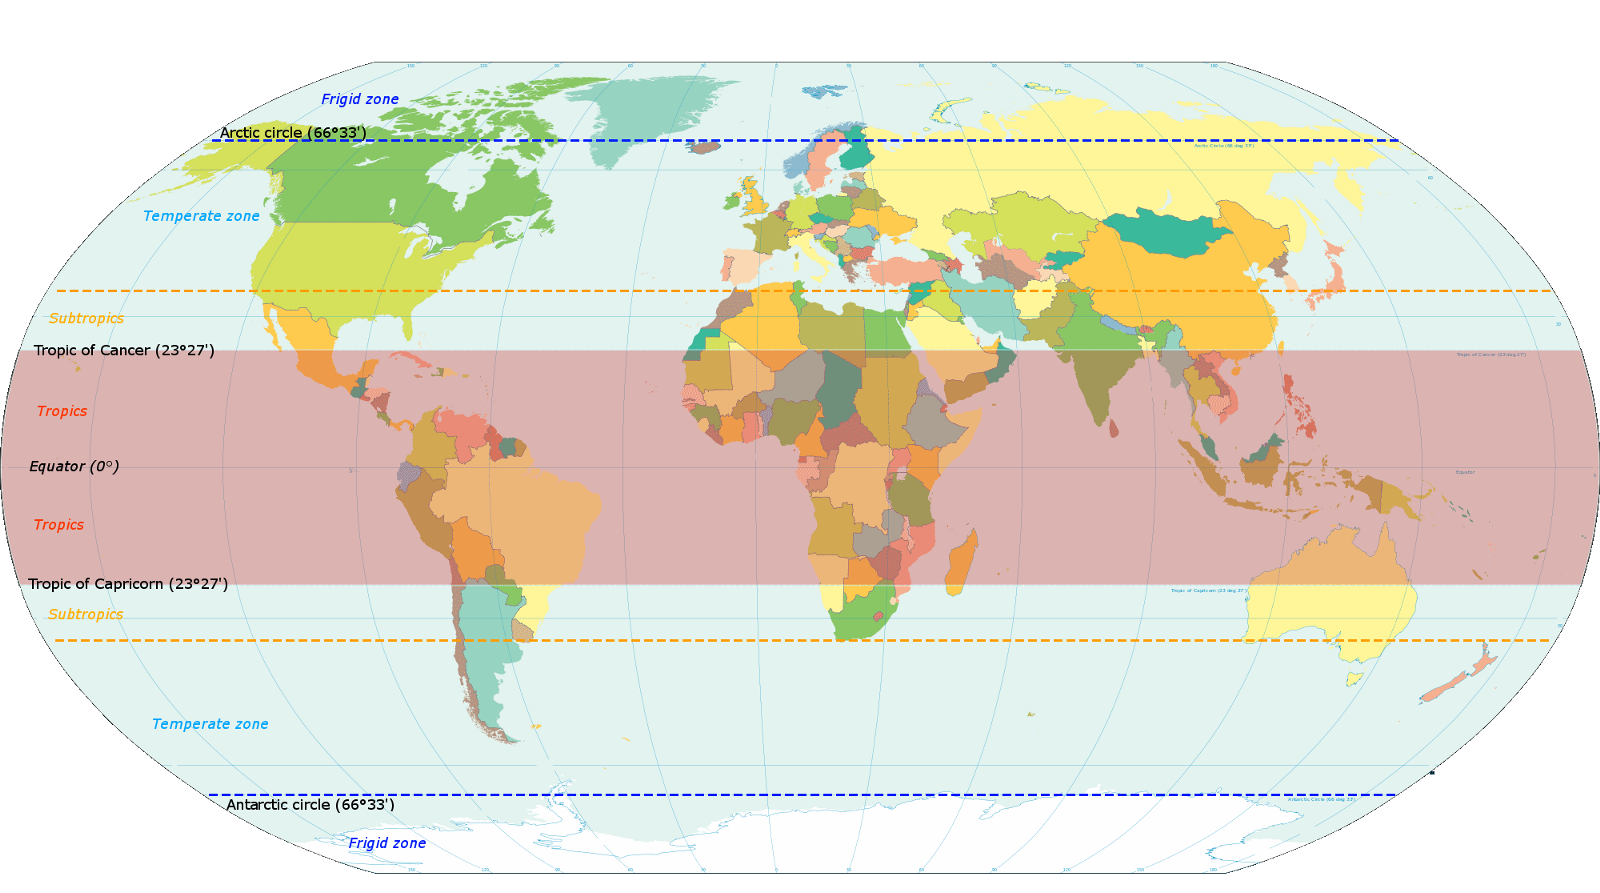 before we get onto the kppen climate groups this map showing the equator the tropical latitudes and the tropical and sub tropical regions is useful in